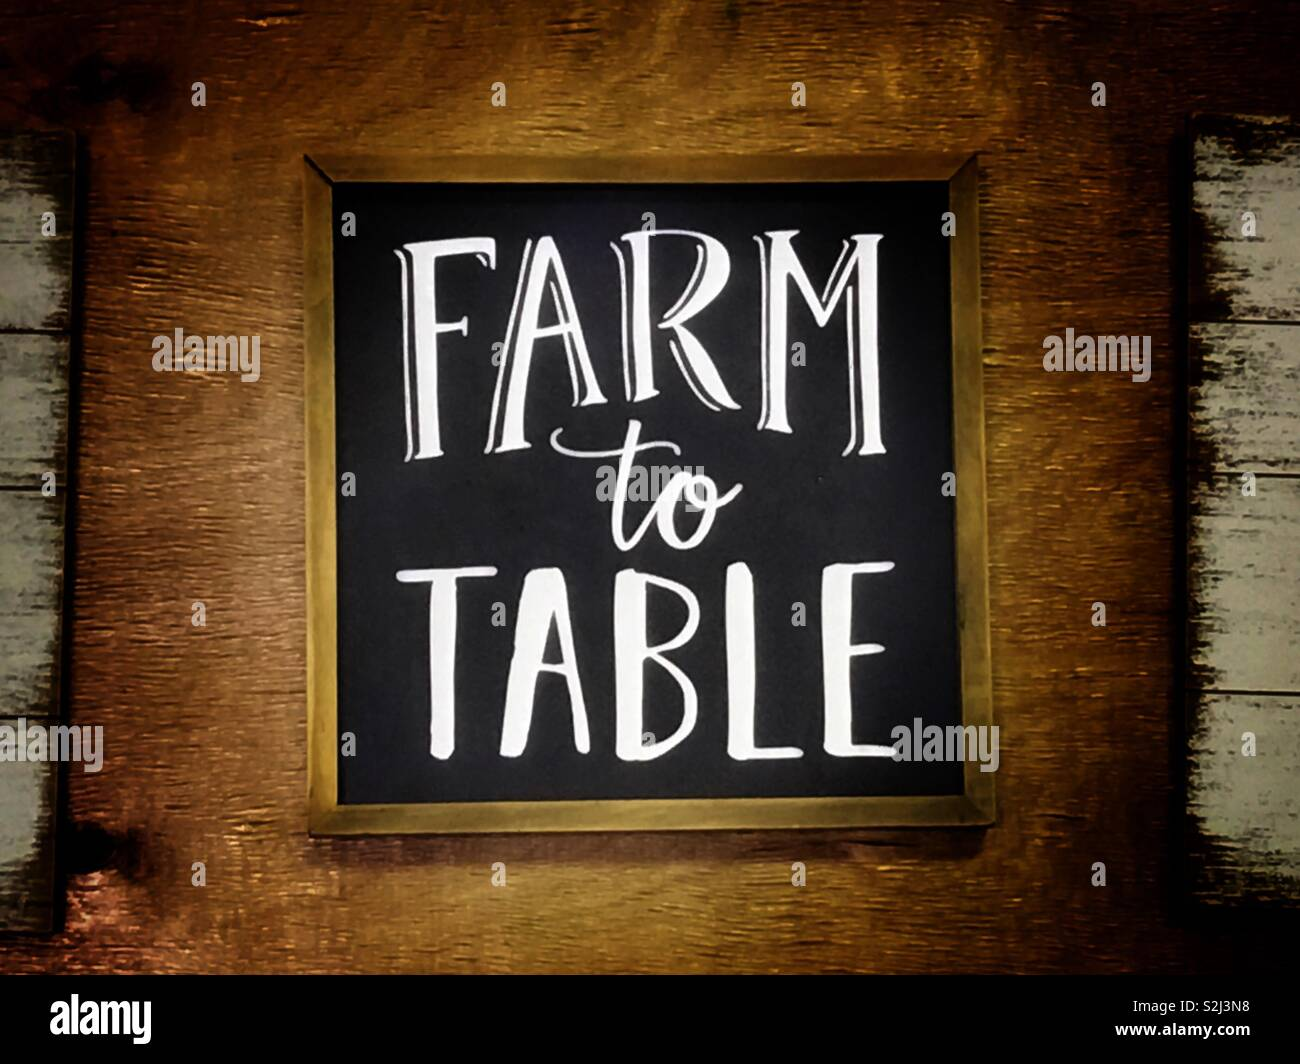 Farm to table movement encouraging everyone to buy locally grown food - Stock Image